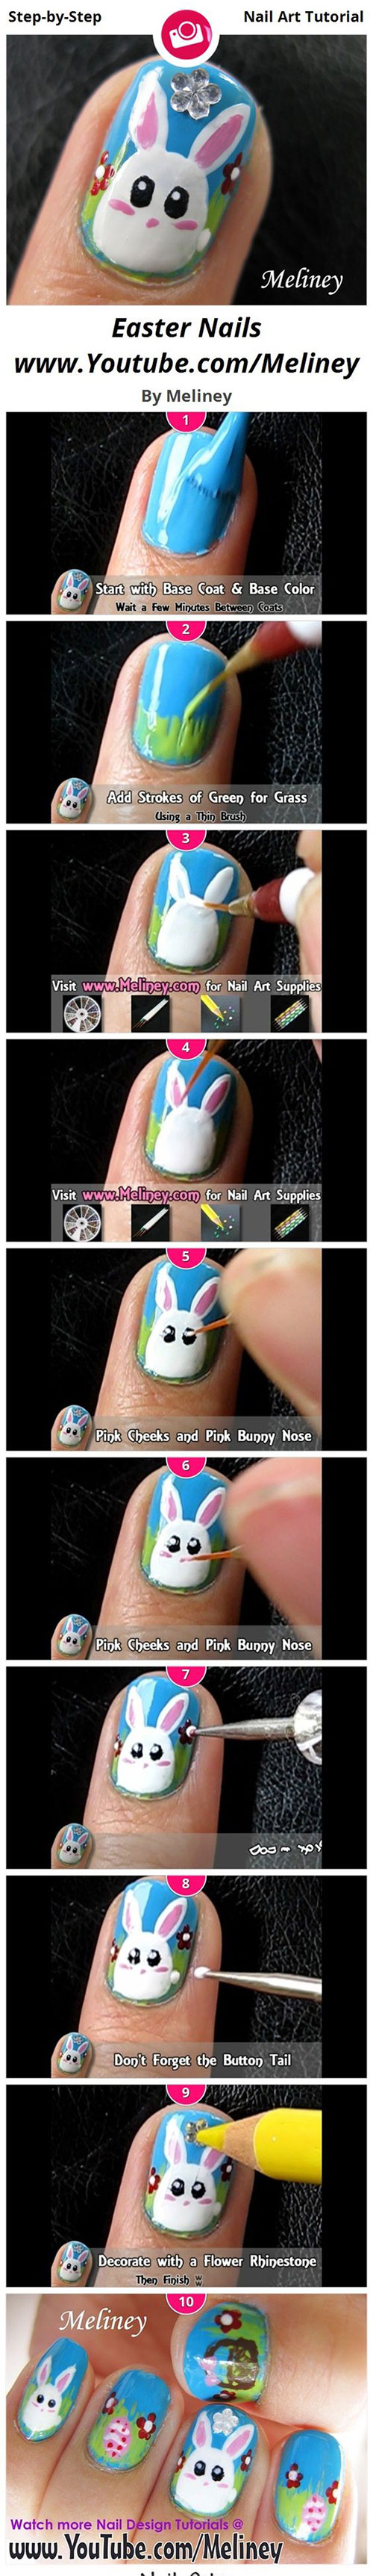 18-Easter-Nail-Art-Tutorials-For-Beginners-Learners-2016-17